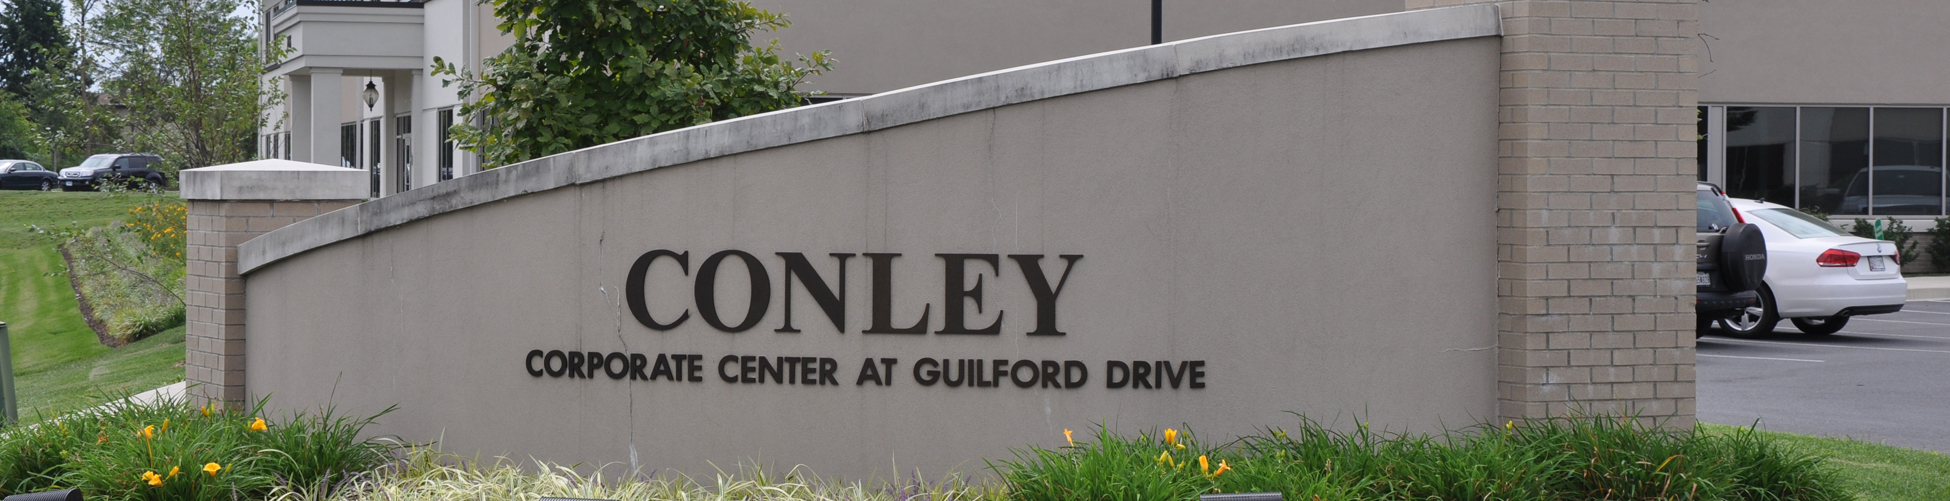 Conley - Corporate Center at Guilford Drive